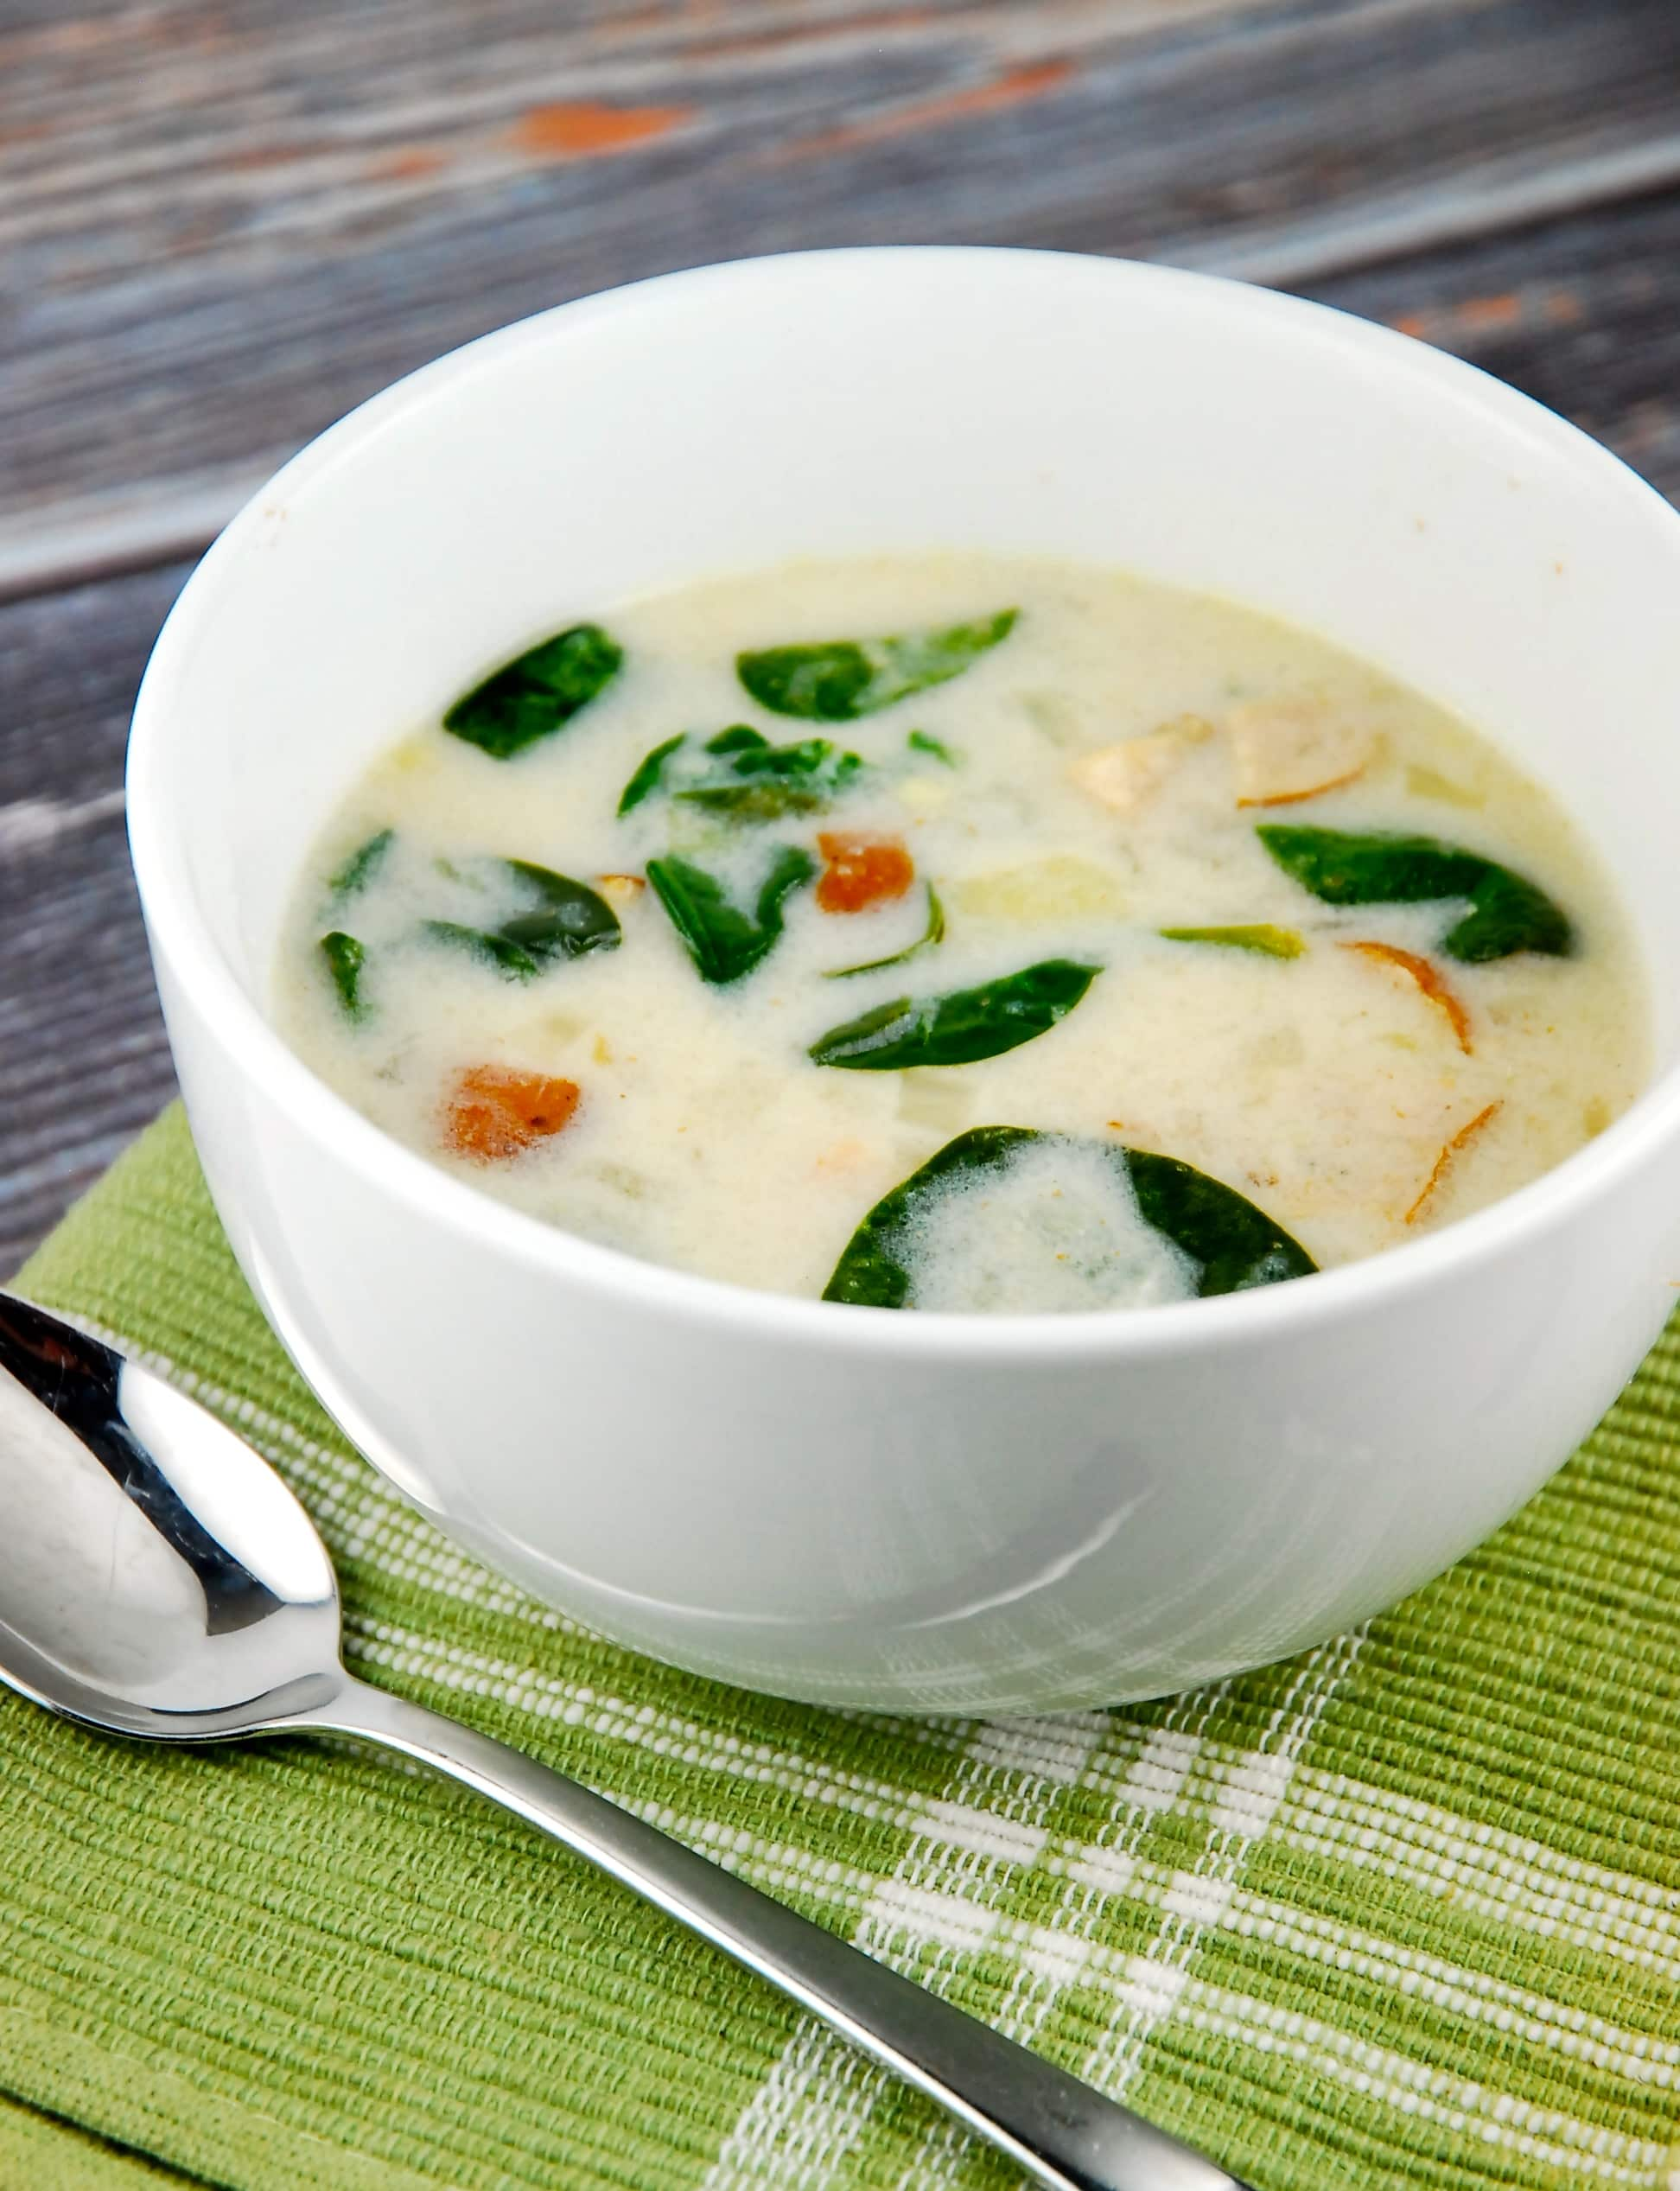 Slow cooker zuppa toscana recipe 6 smart points laaloosh for Toscana soup olive garden calories